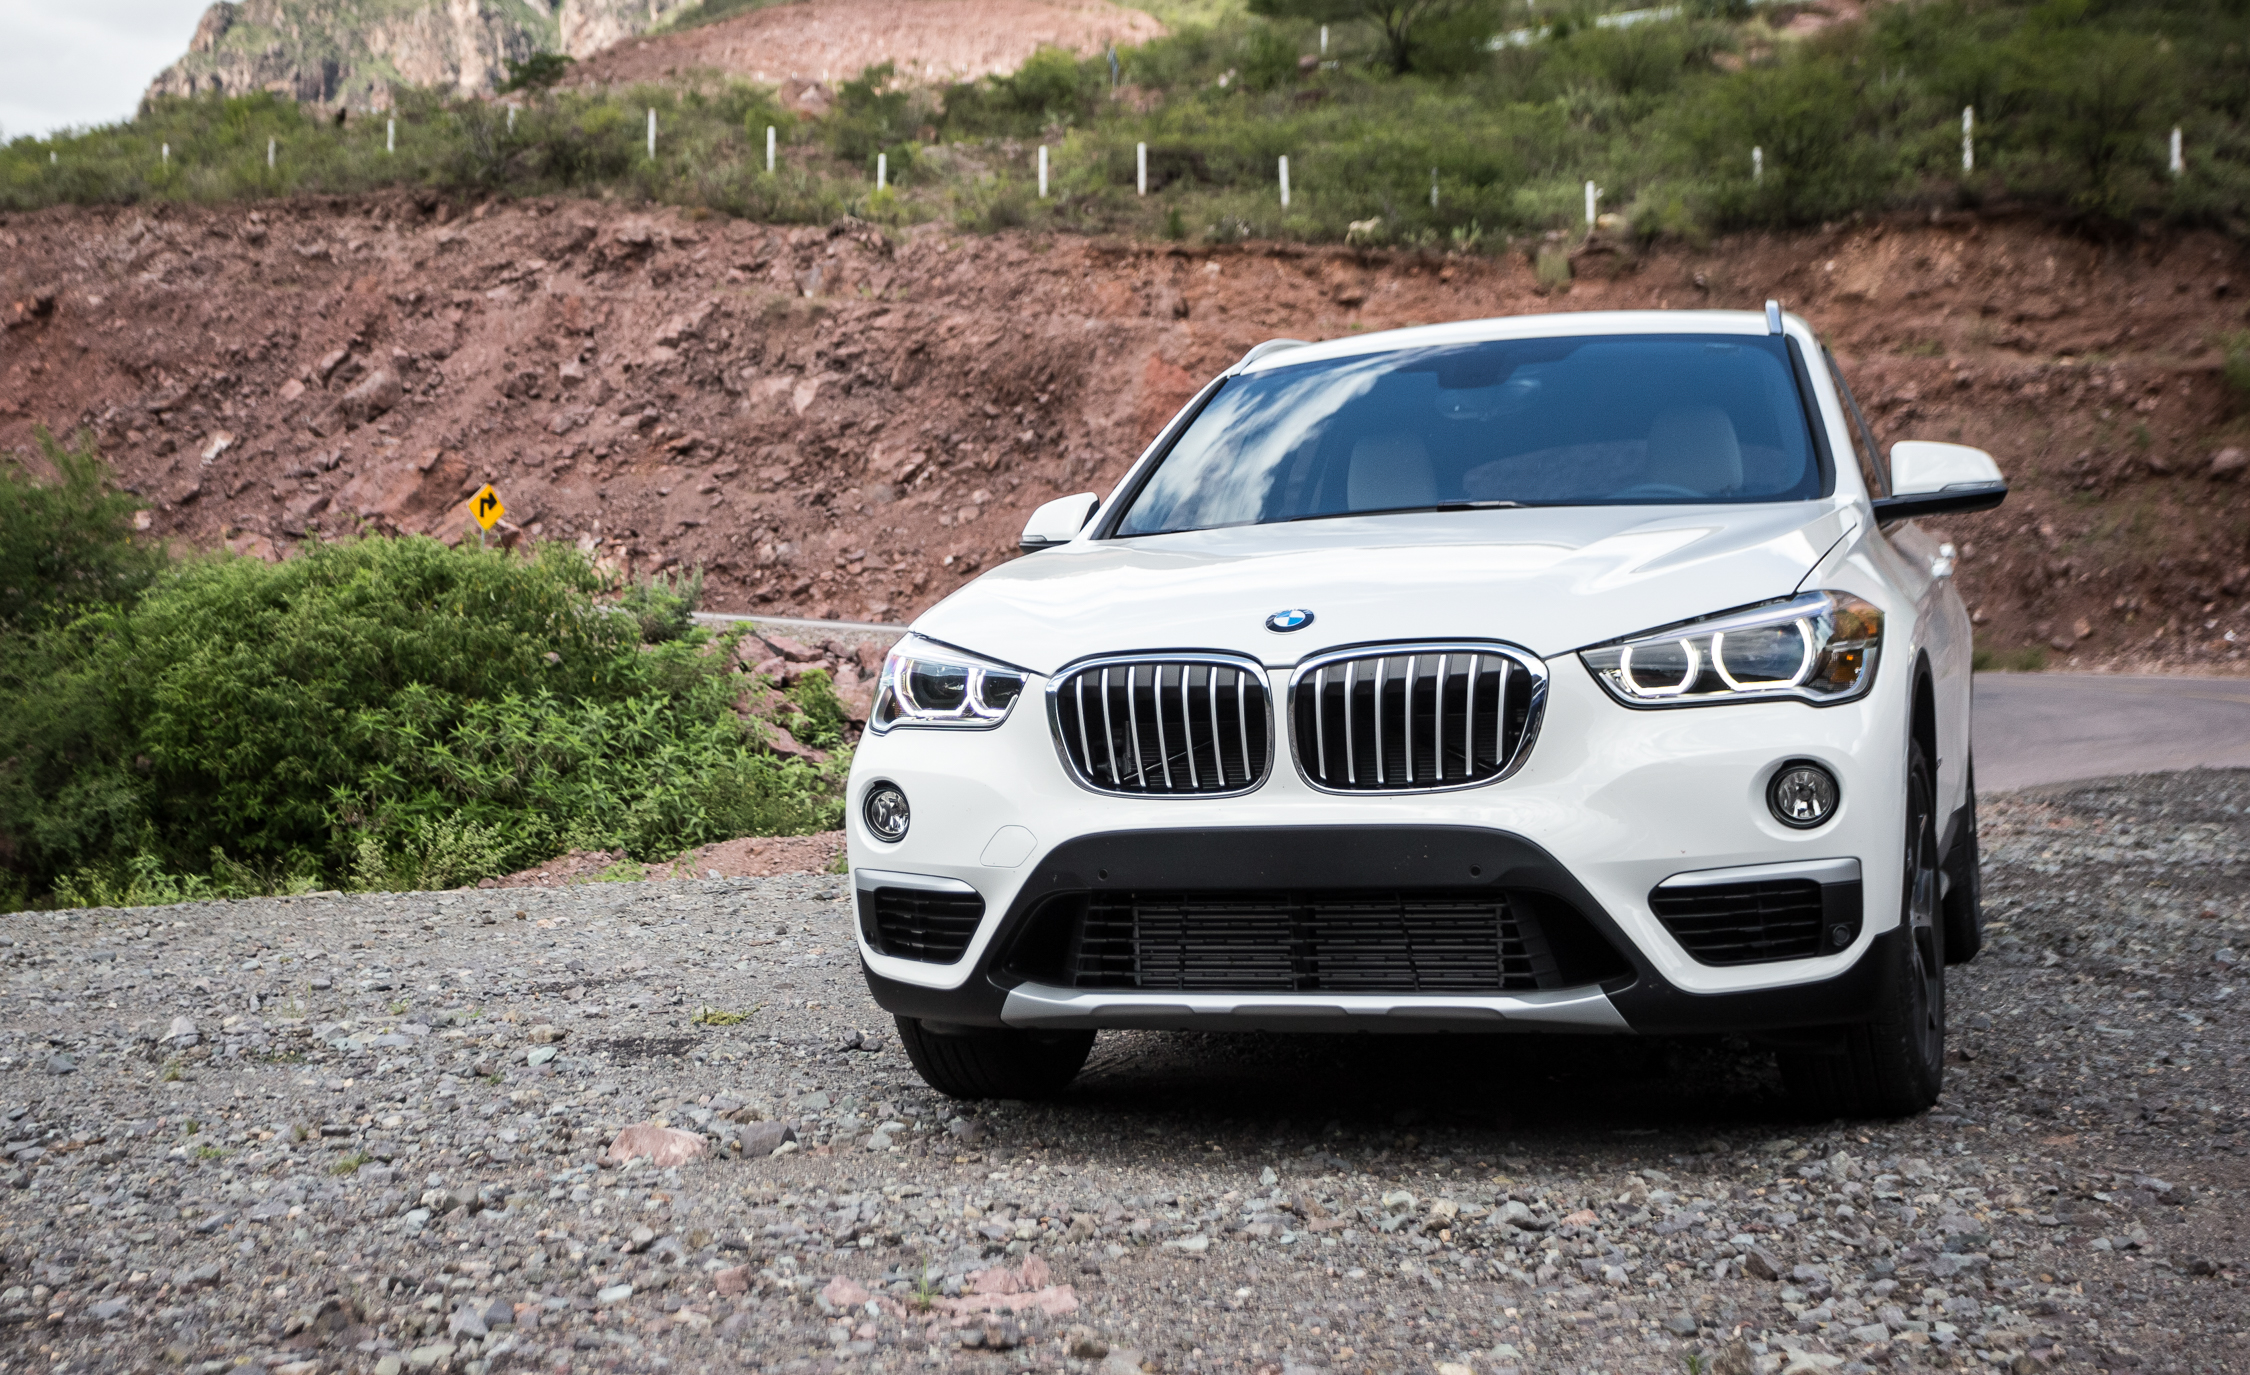 2016 BMW X1 Exterior White Metallic Front (Photo 34 of 36)